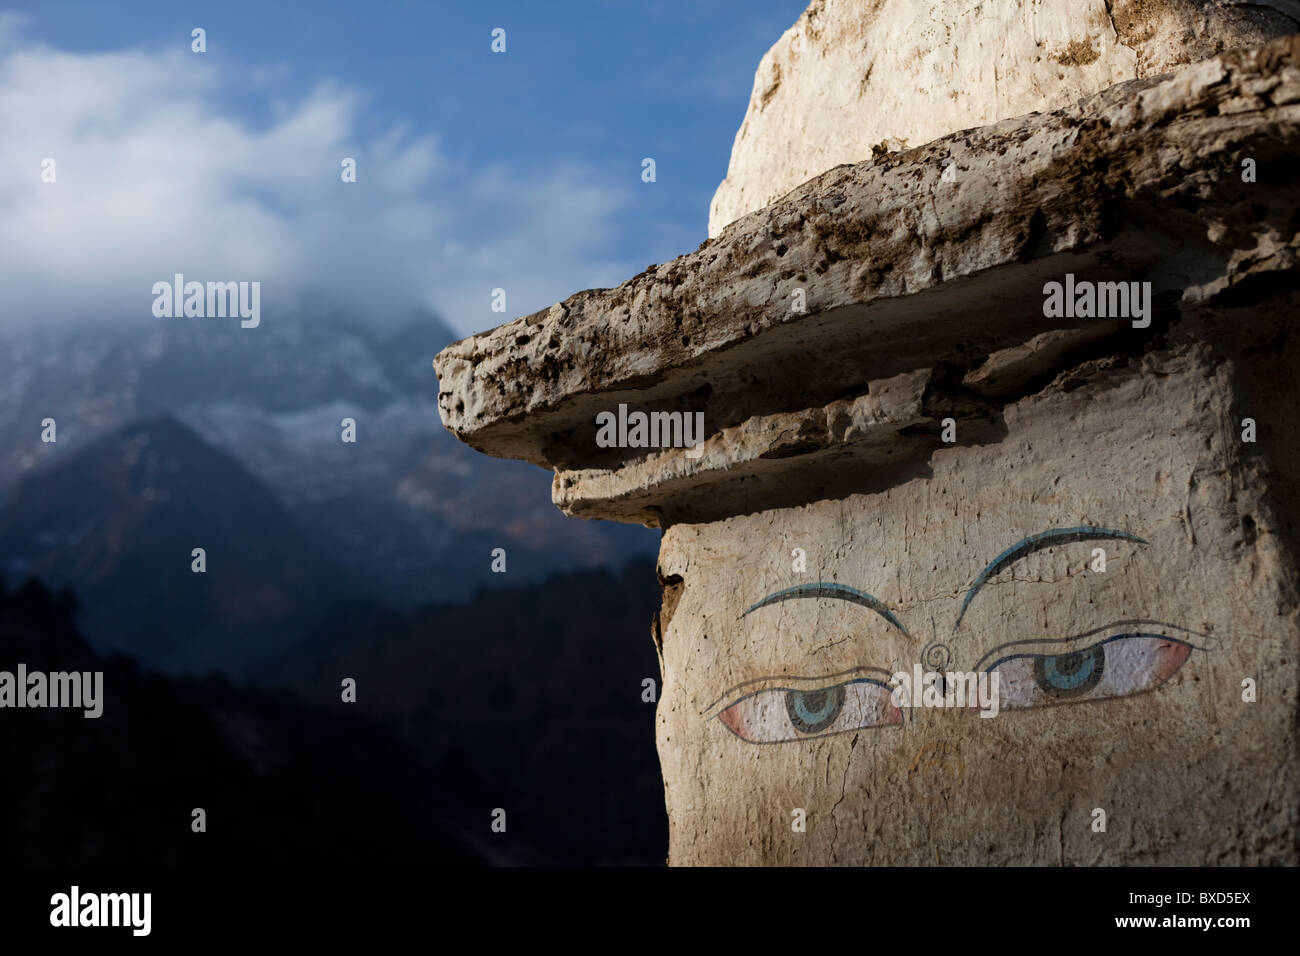 The eyes of a trail side stupa keep watch over travelers in Nepal. - Stock Image